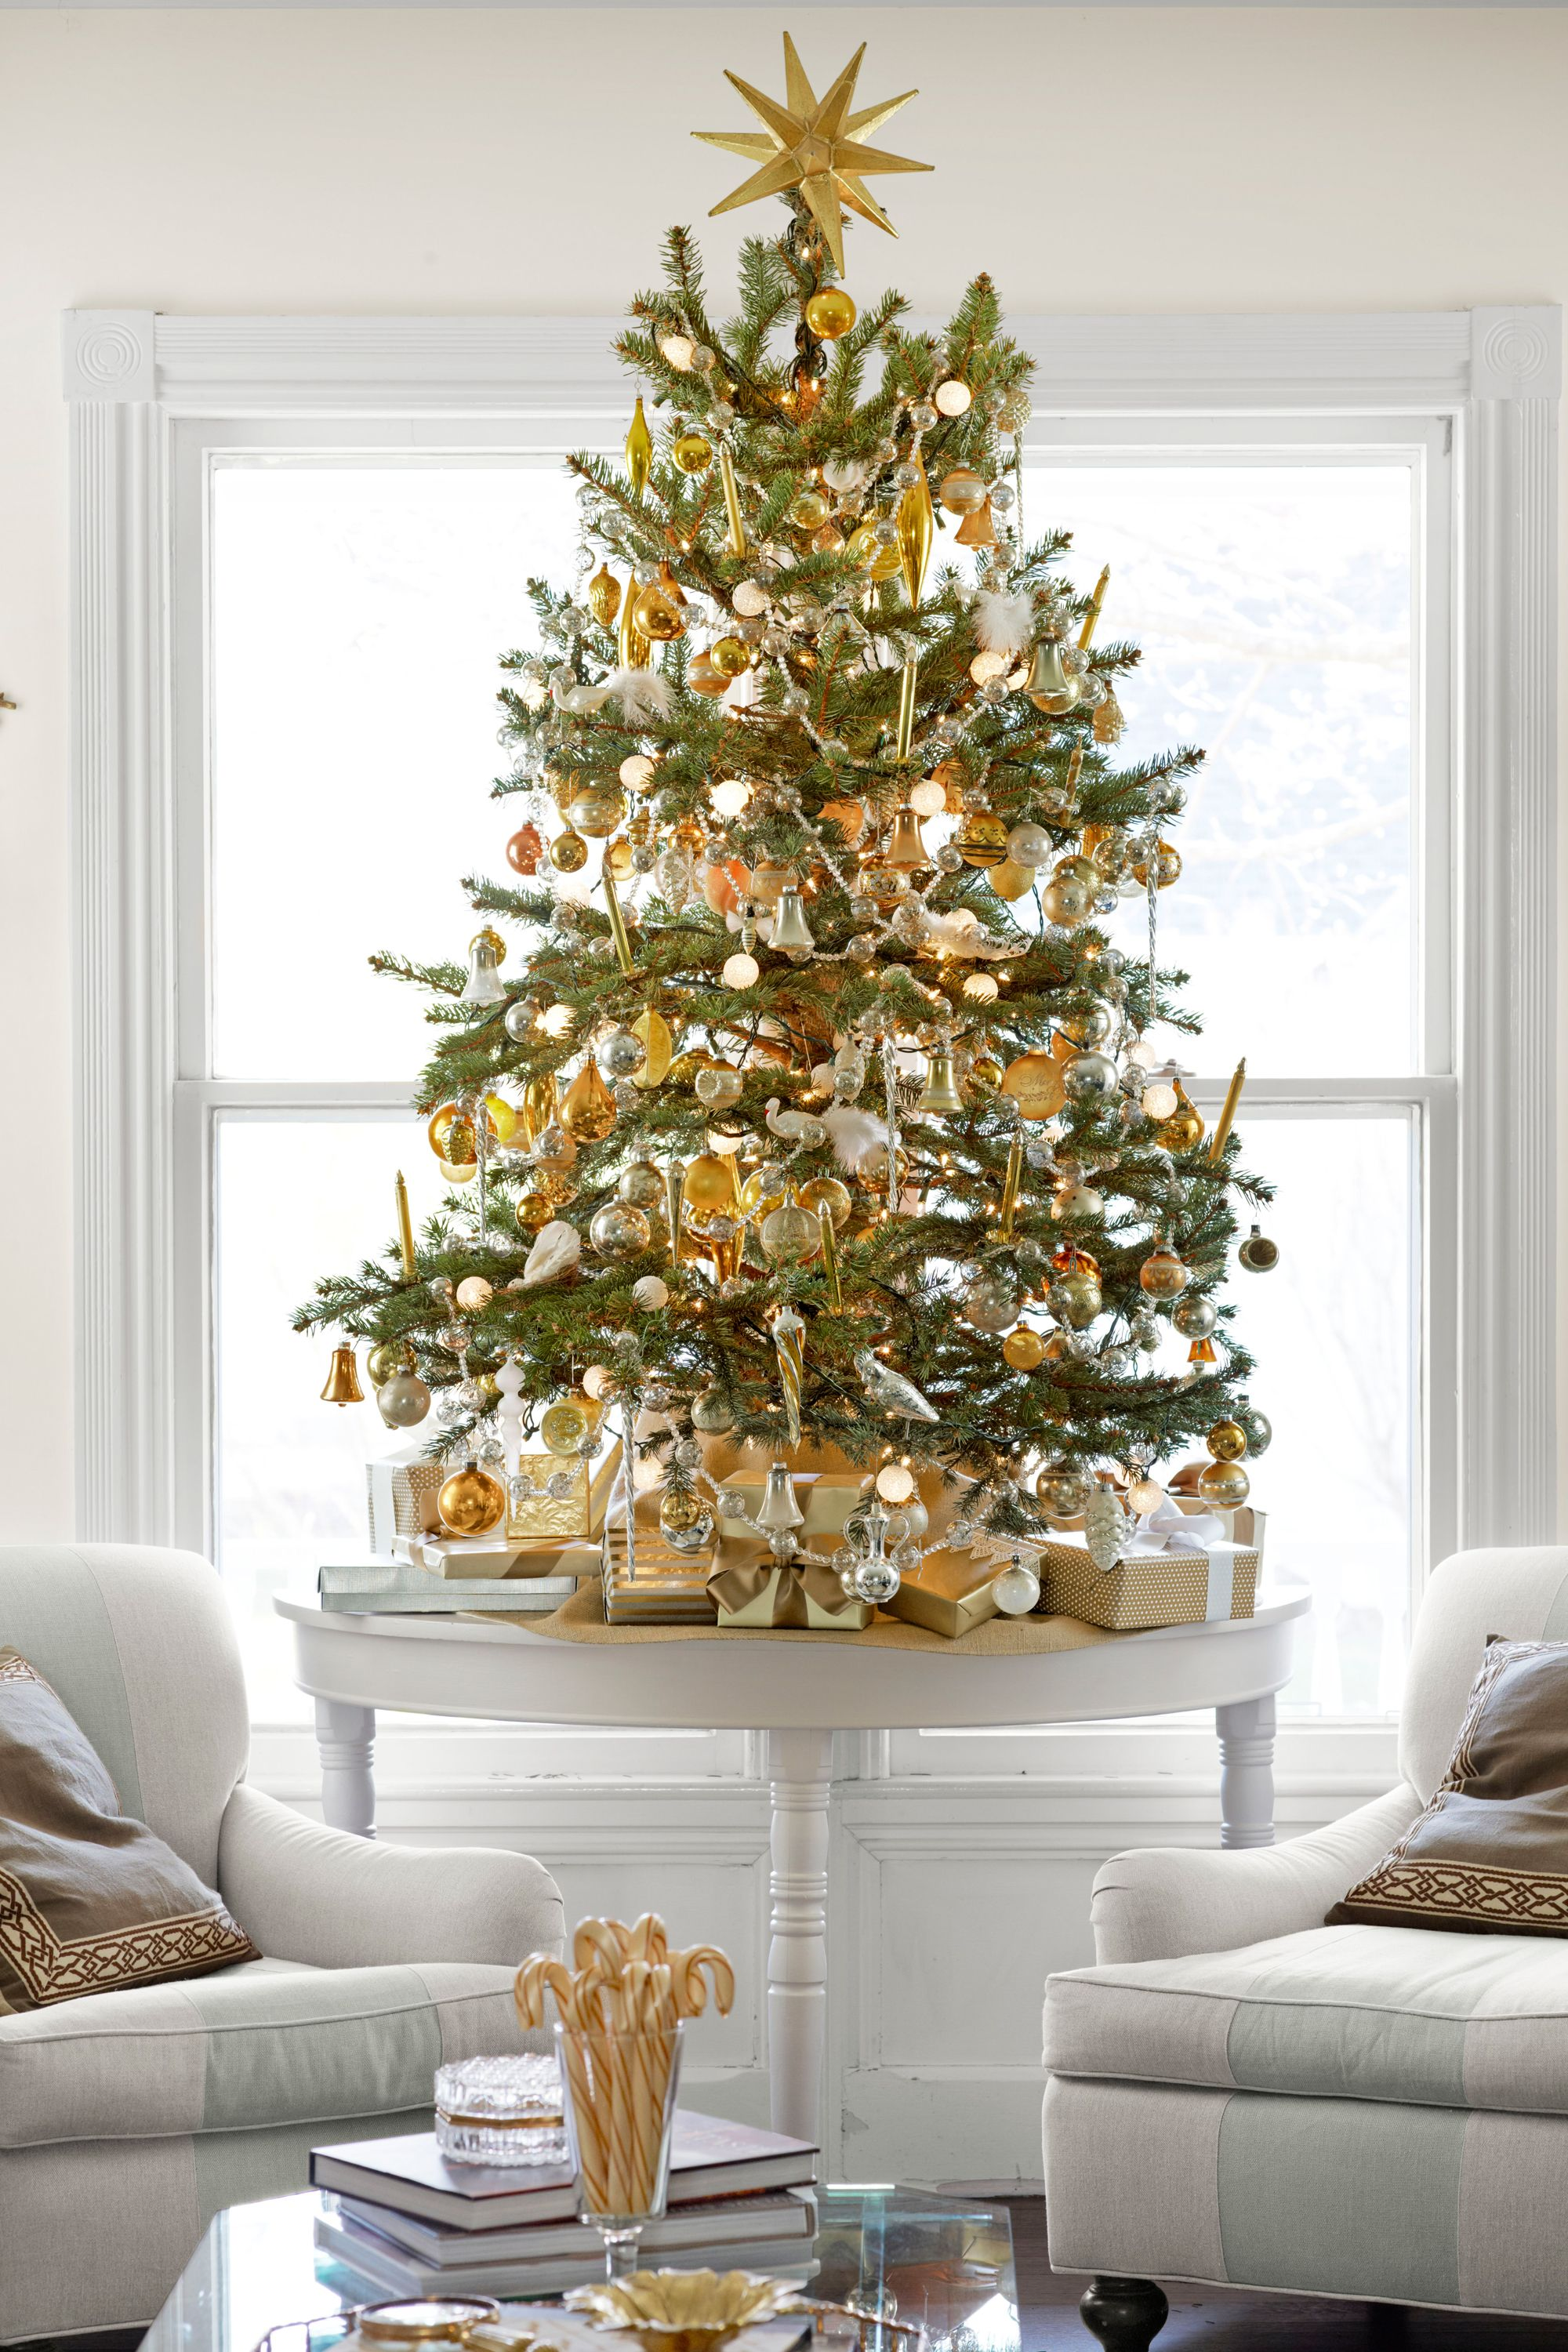 seen unveils trump east preview during white decorations a melania in time the media house of christmas room gingerbread dining decor is